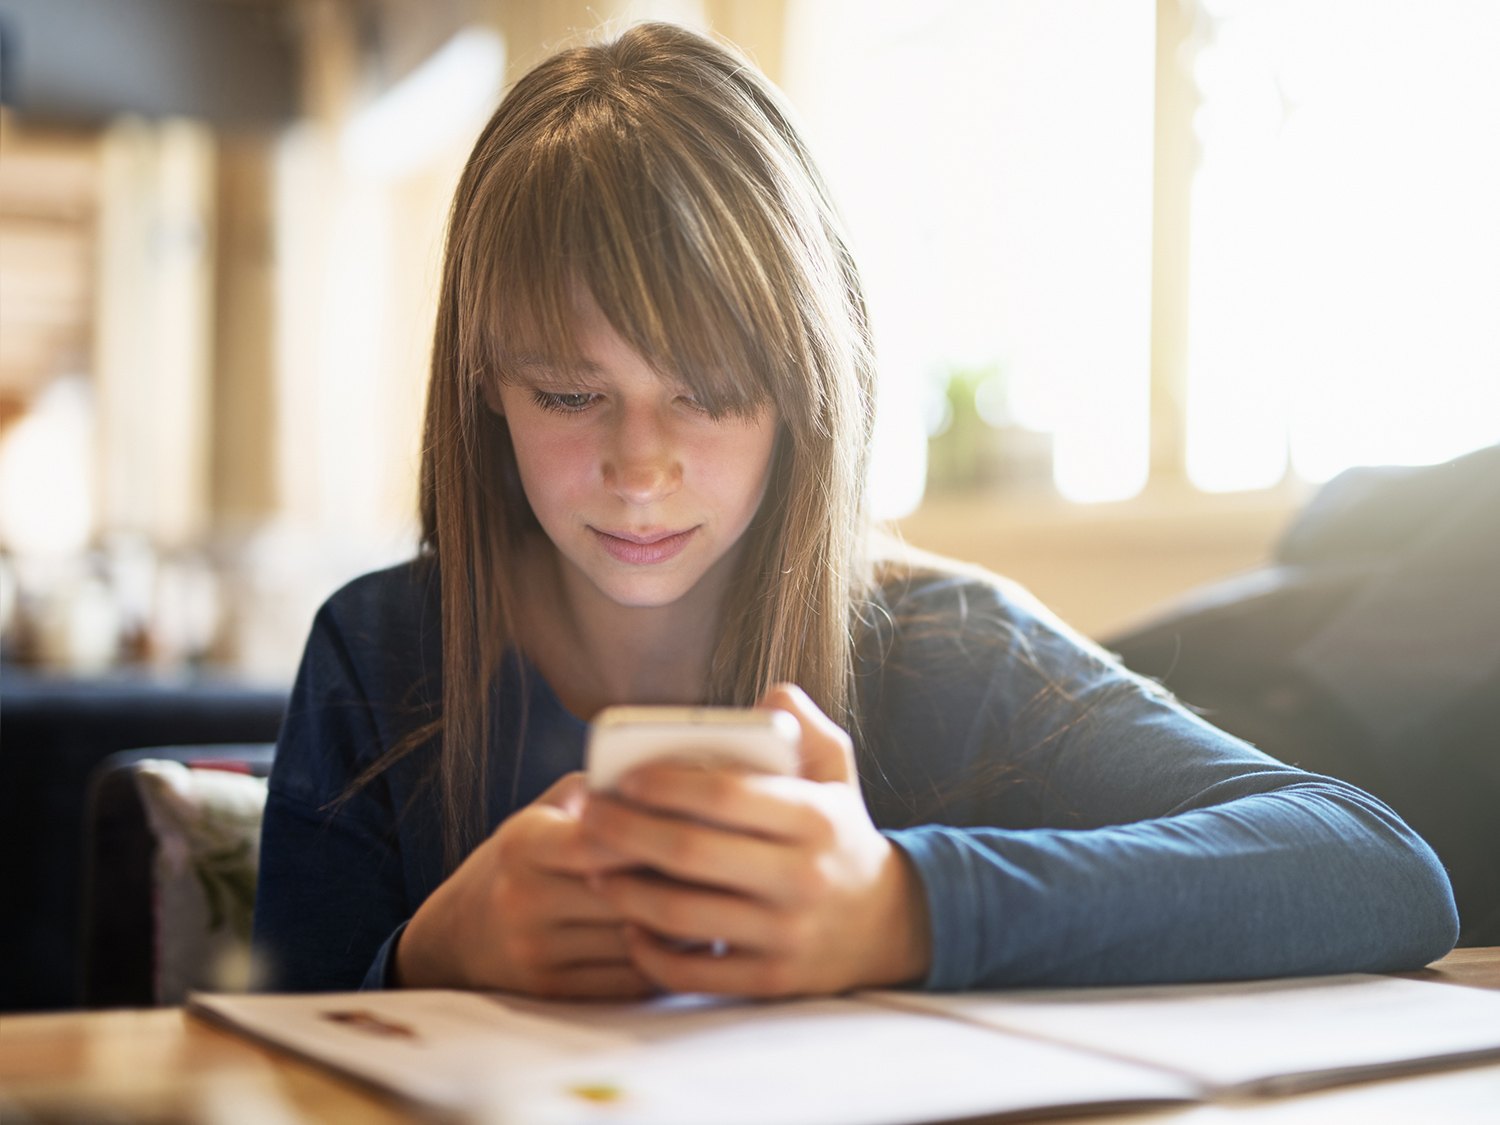 10 Tips For Cell Phone Safety